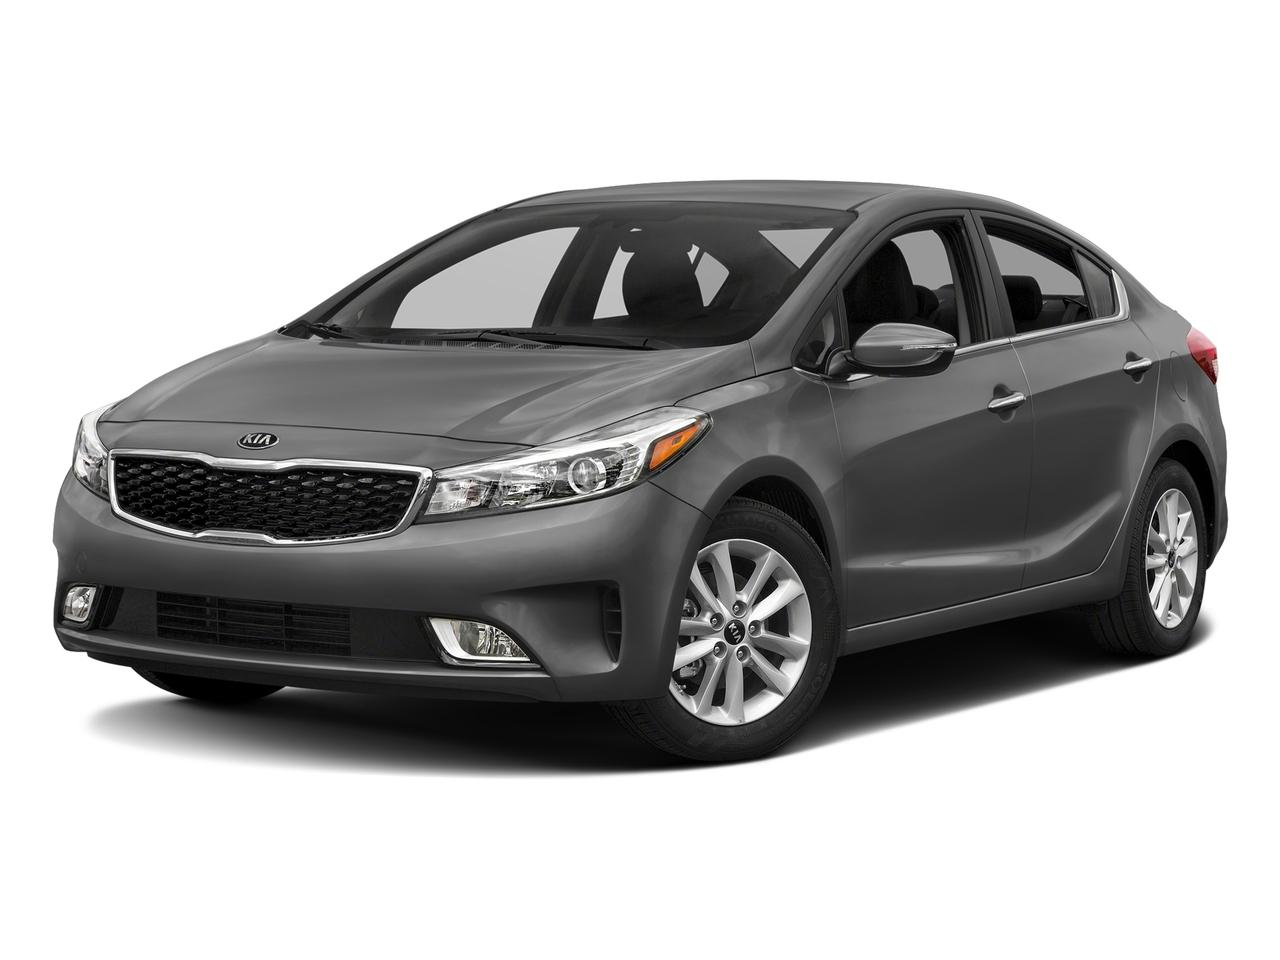 2017 Kia Forte Vehicle Photo in Quakertown, PA 18951